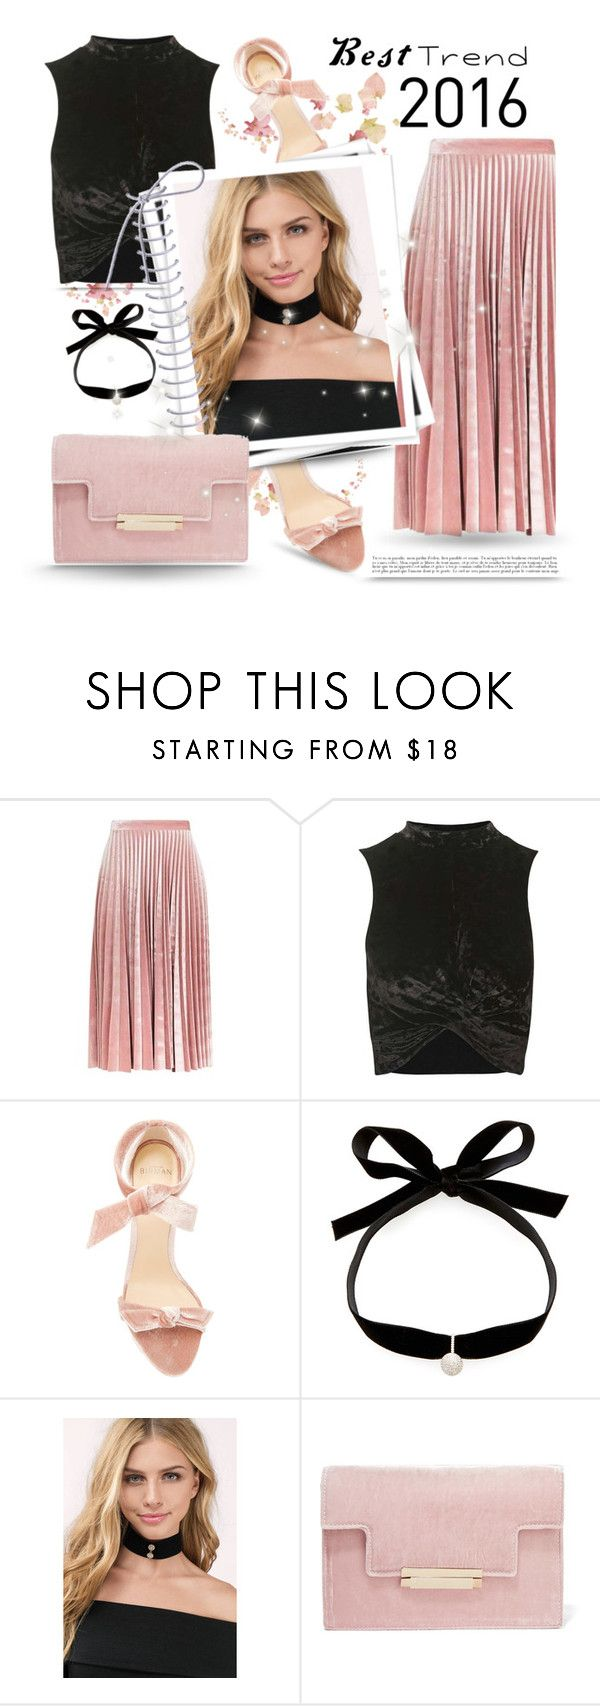 """Velvet"" by chicpeacelove ❤ liked on Polyvore featuring Topshop, Alexandre Birman, Mateo, Tobi, GALA, AERIN and besttrend2016"